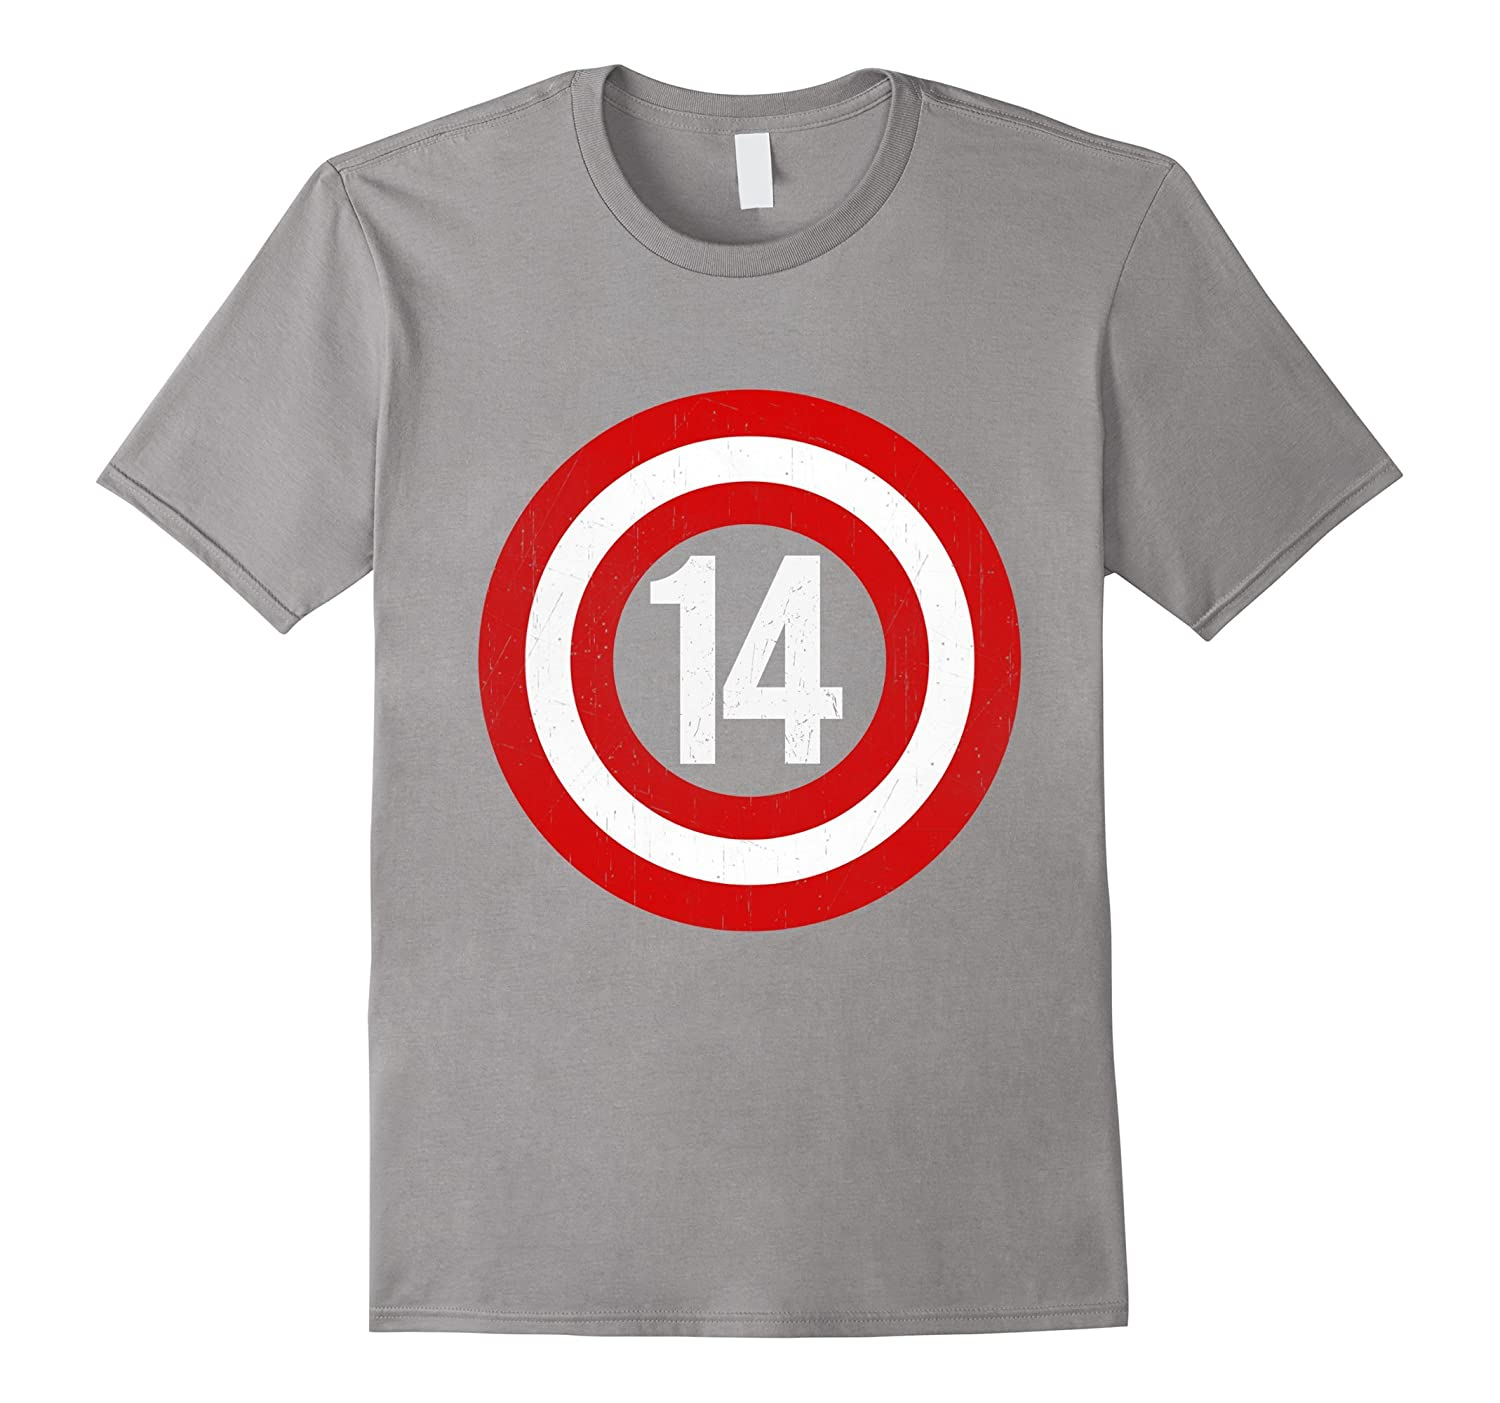 Captain 14th Birthday Tshirt Gift 14 Years Old Kids Boy